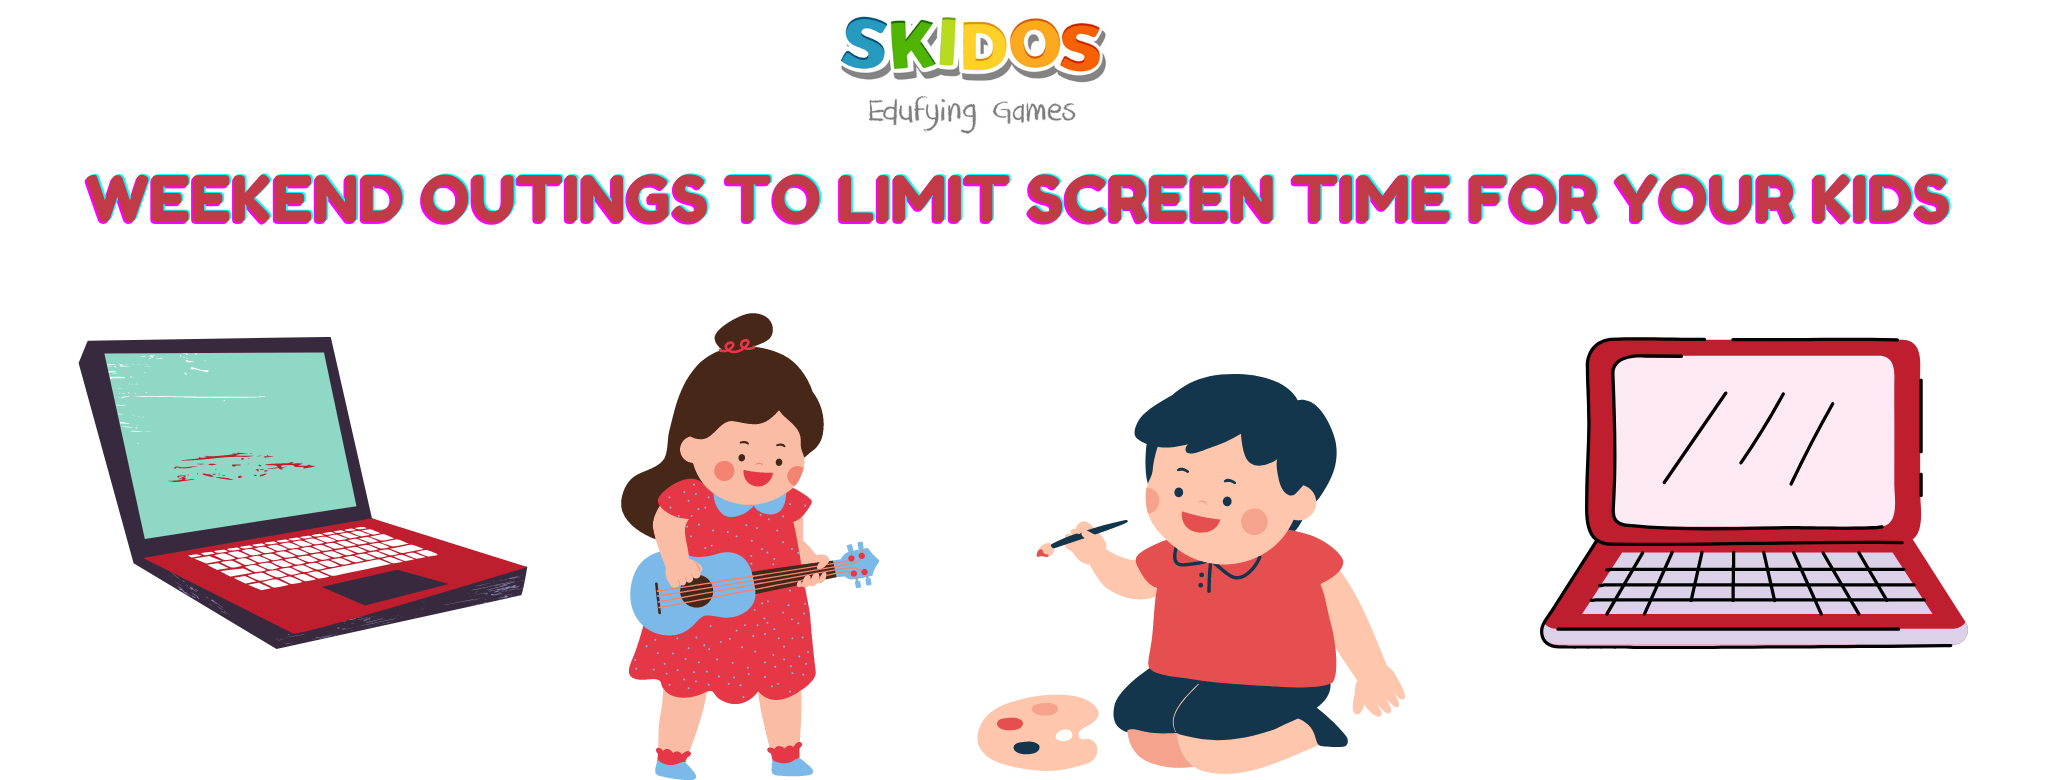 Weekend outings to limit screen time for your kids